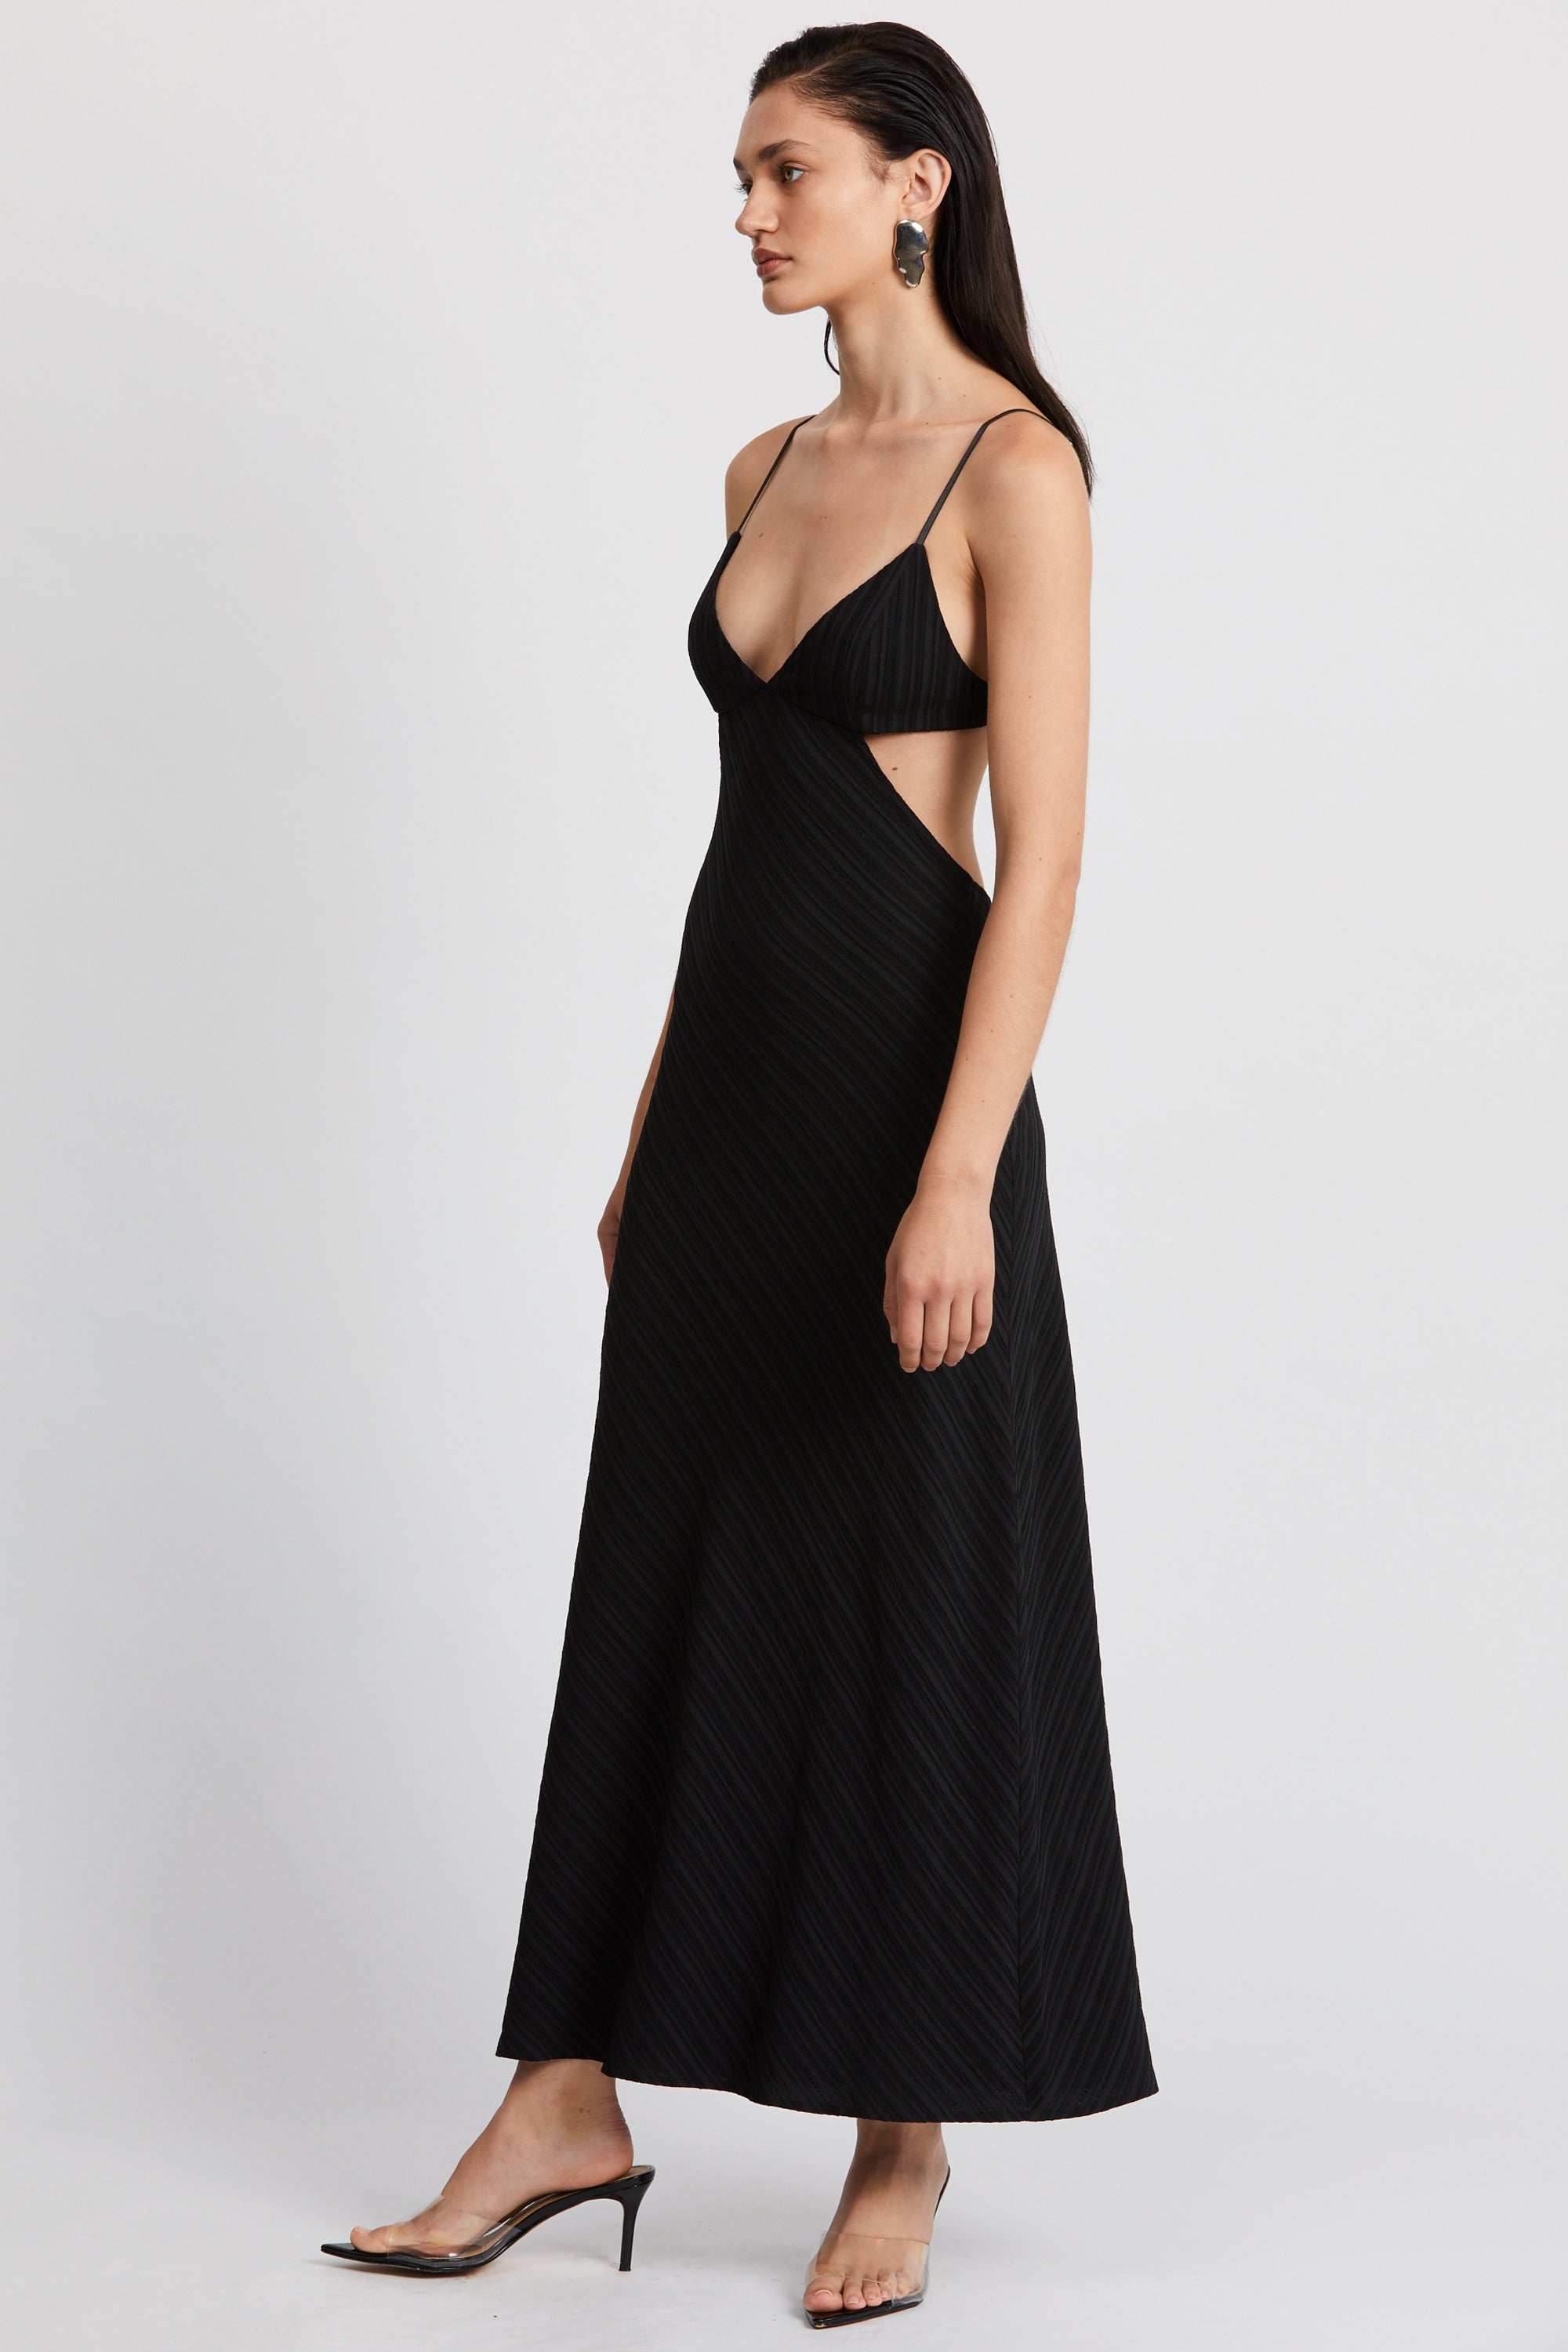 TIE DYE TRI MIDI DRESS | BLACK RIPPLE